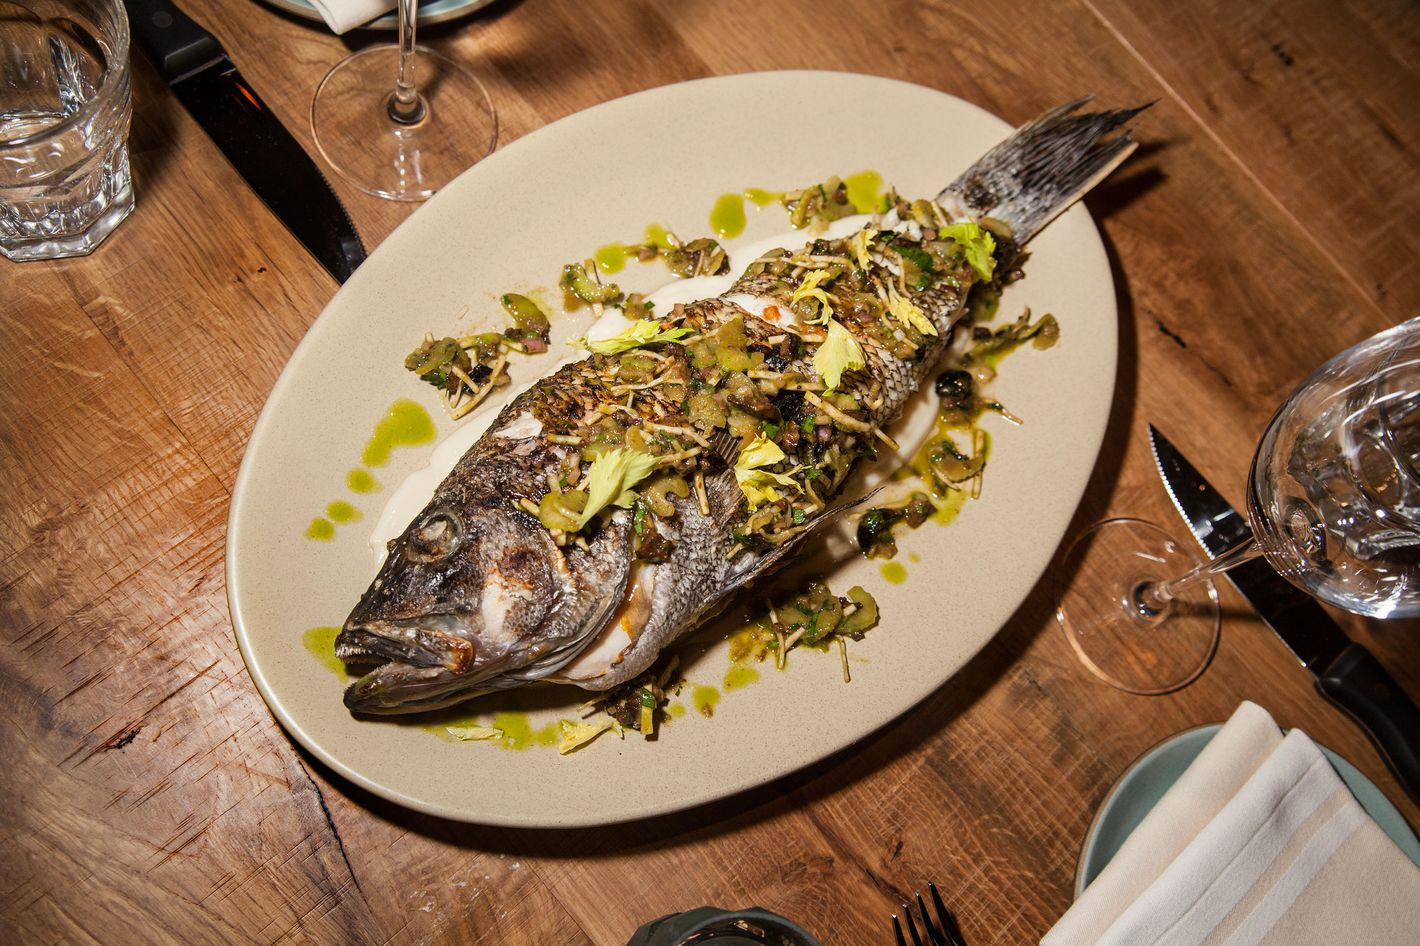 Whole roasted black sea bass is cooked on a wood grill.